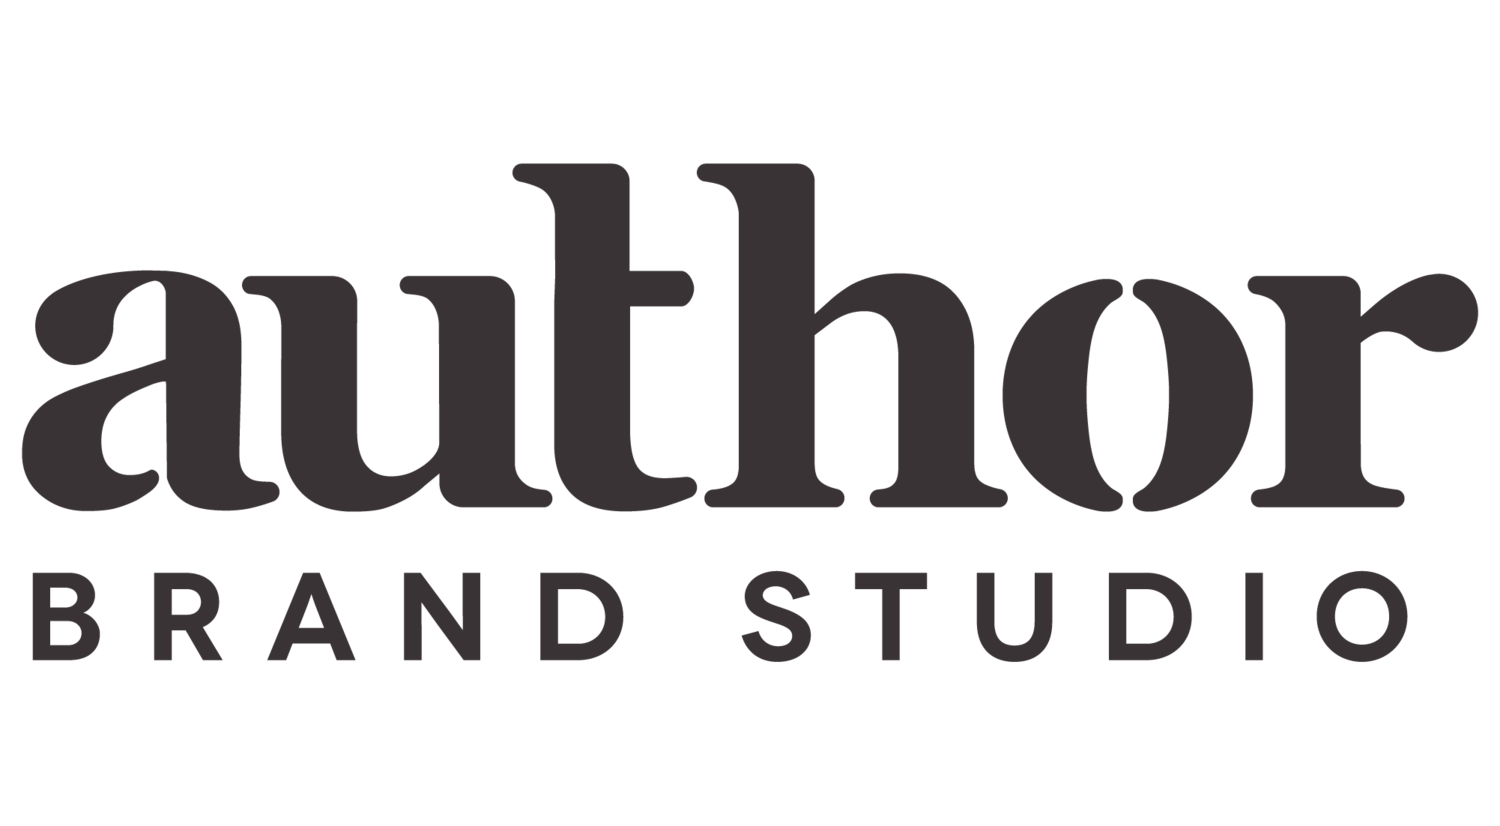 Author Brand Studio | Branding, Logo, and Web Design for Small- to Medium-Sized Businesses and Entrepreneurs